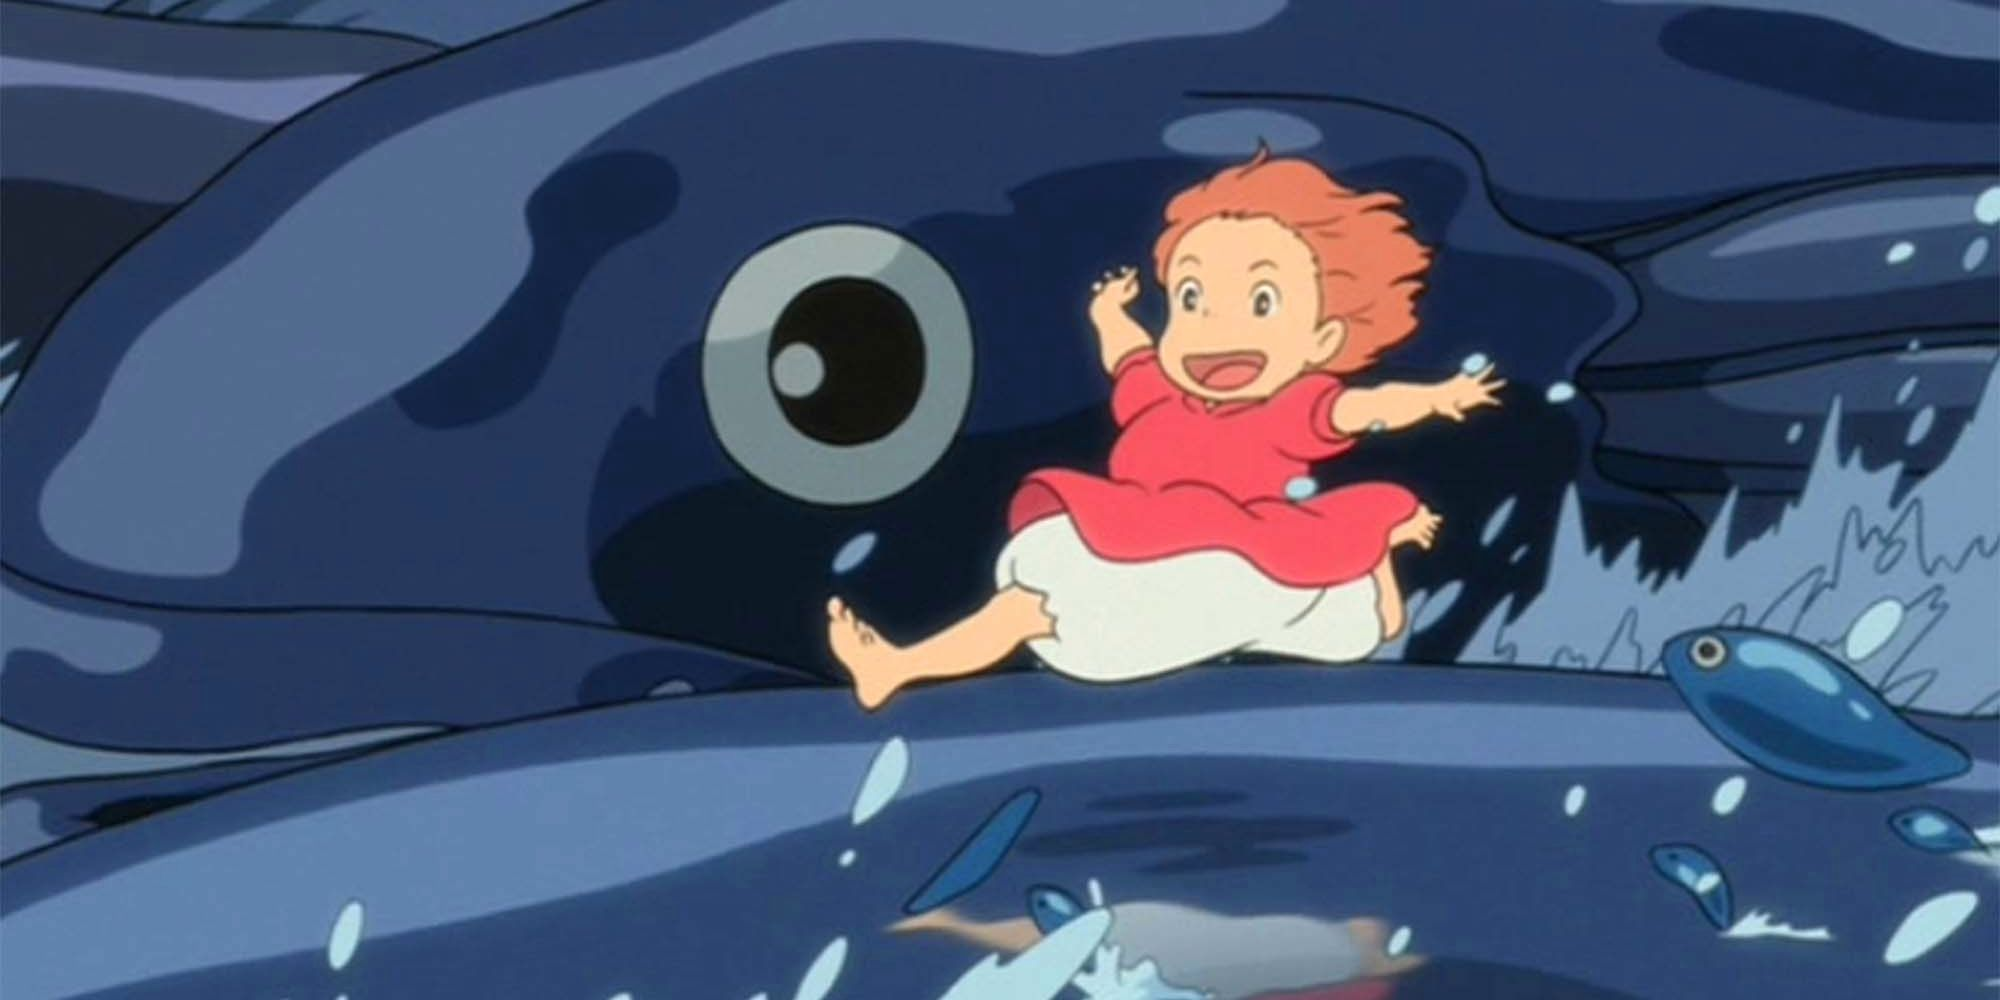 Ponyo 2 Updates: Is A Sequel Happening? | ScreenRant